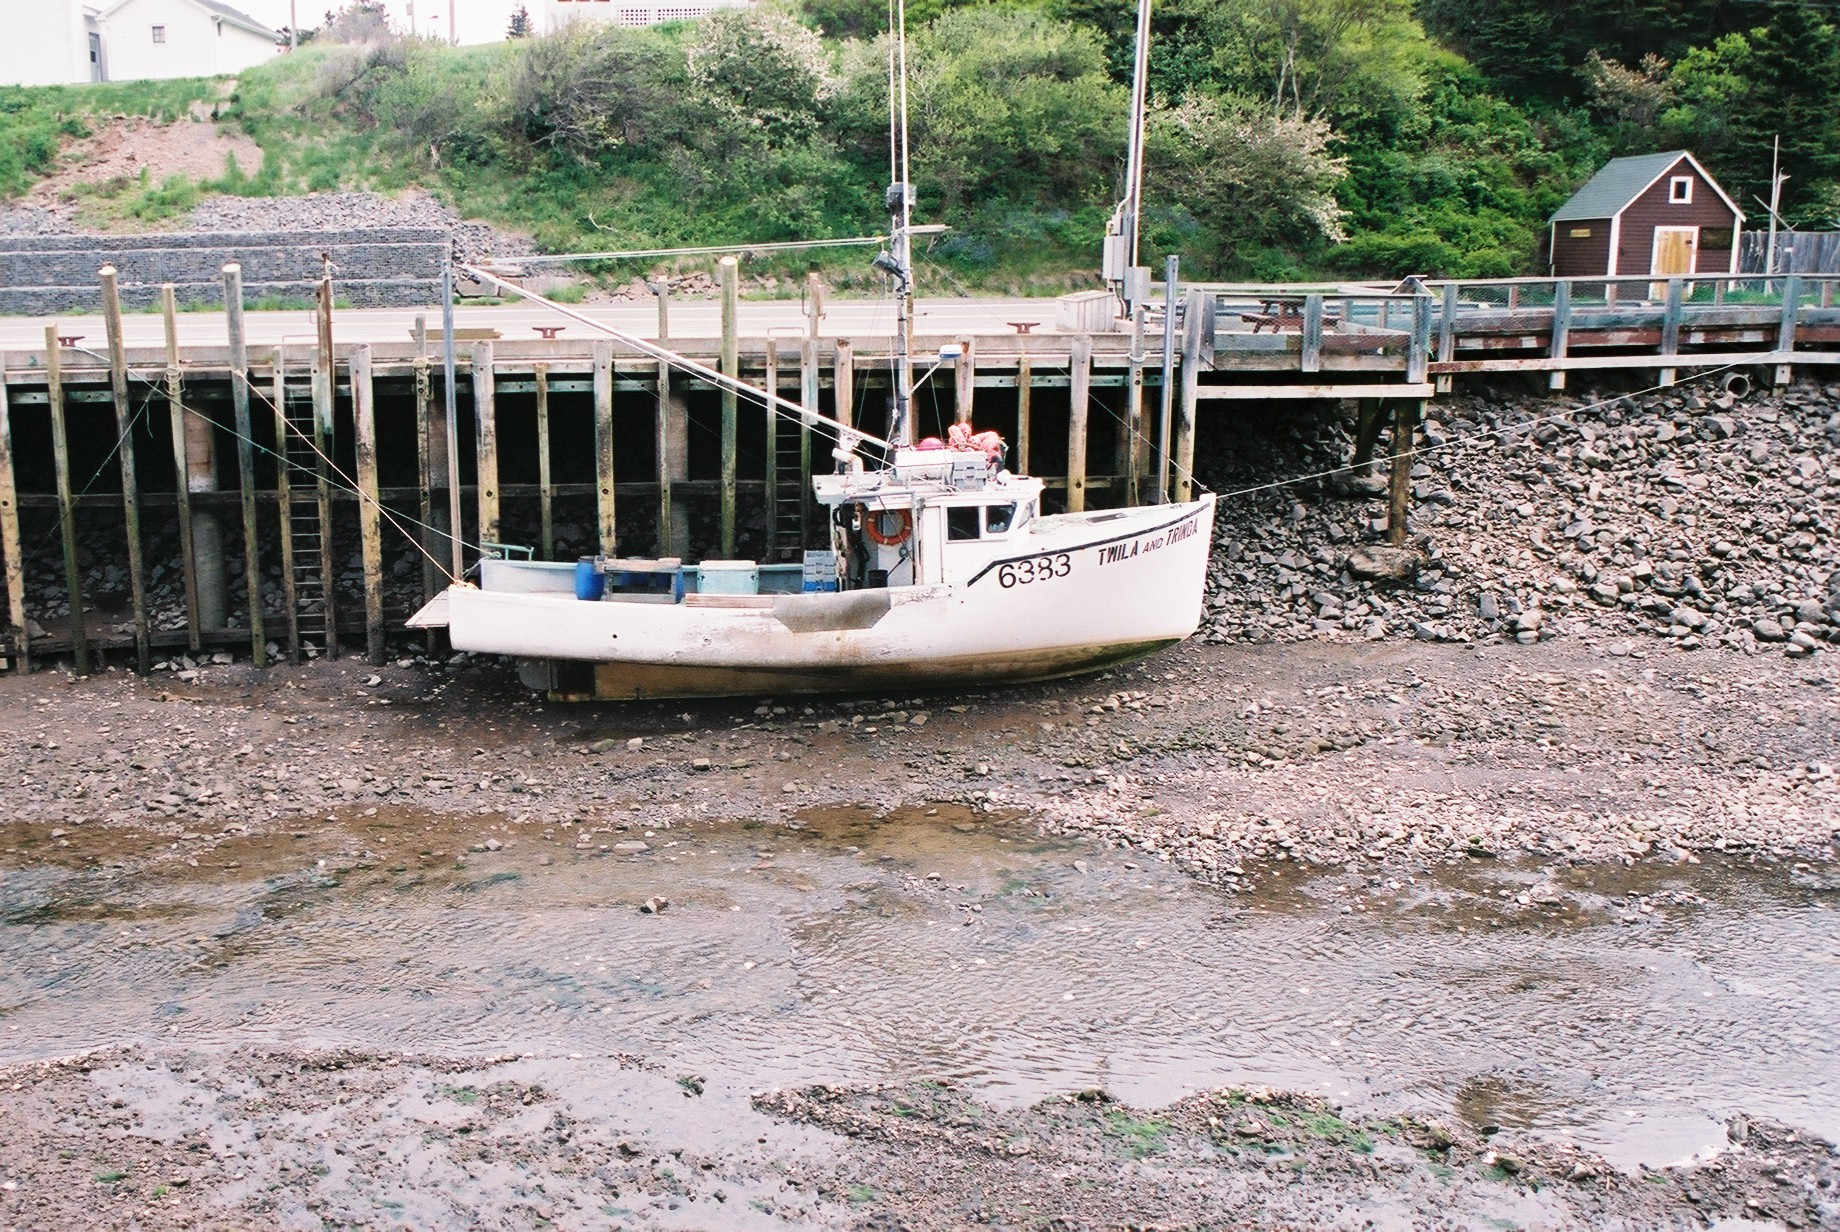 The same white boat at low tide and still tied to the dock.